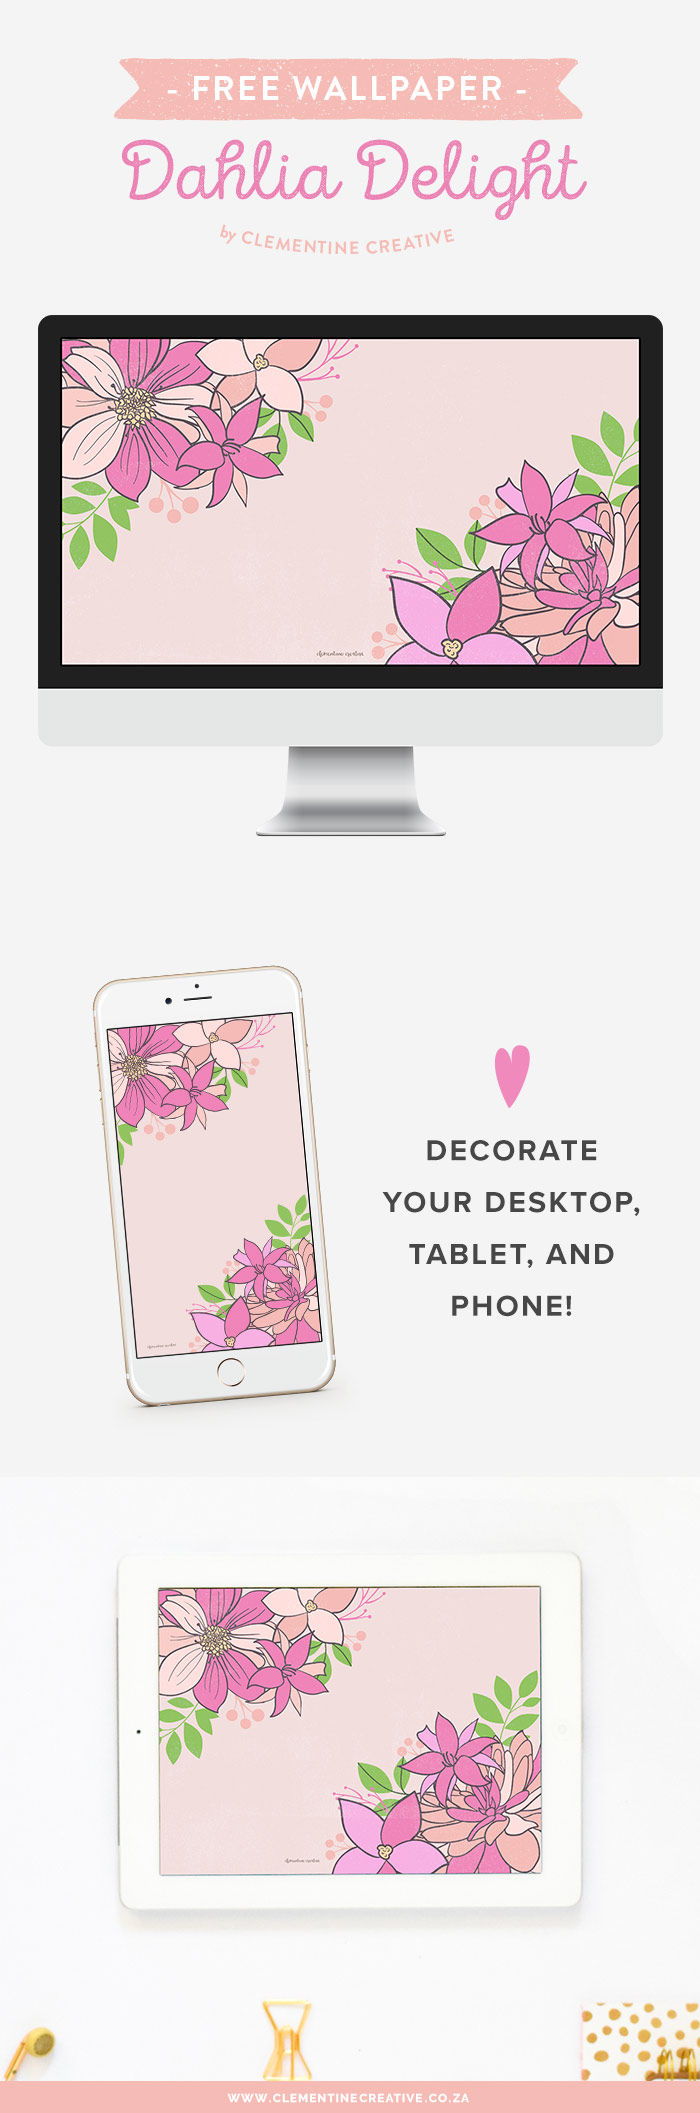 Freshen up your computer with this beautiful pink and peach dahlia wallpaper. Also available for your phone and tablet! Click here to download